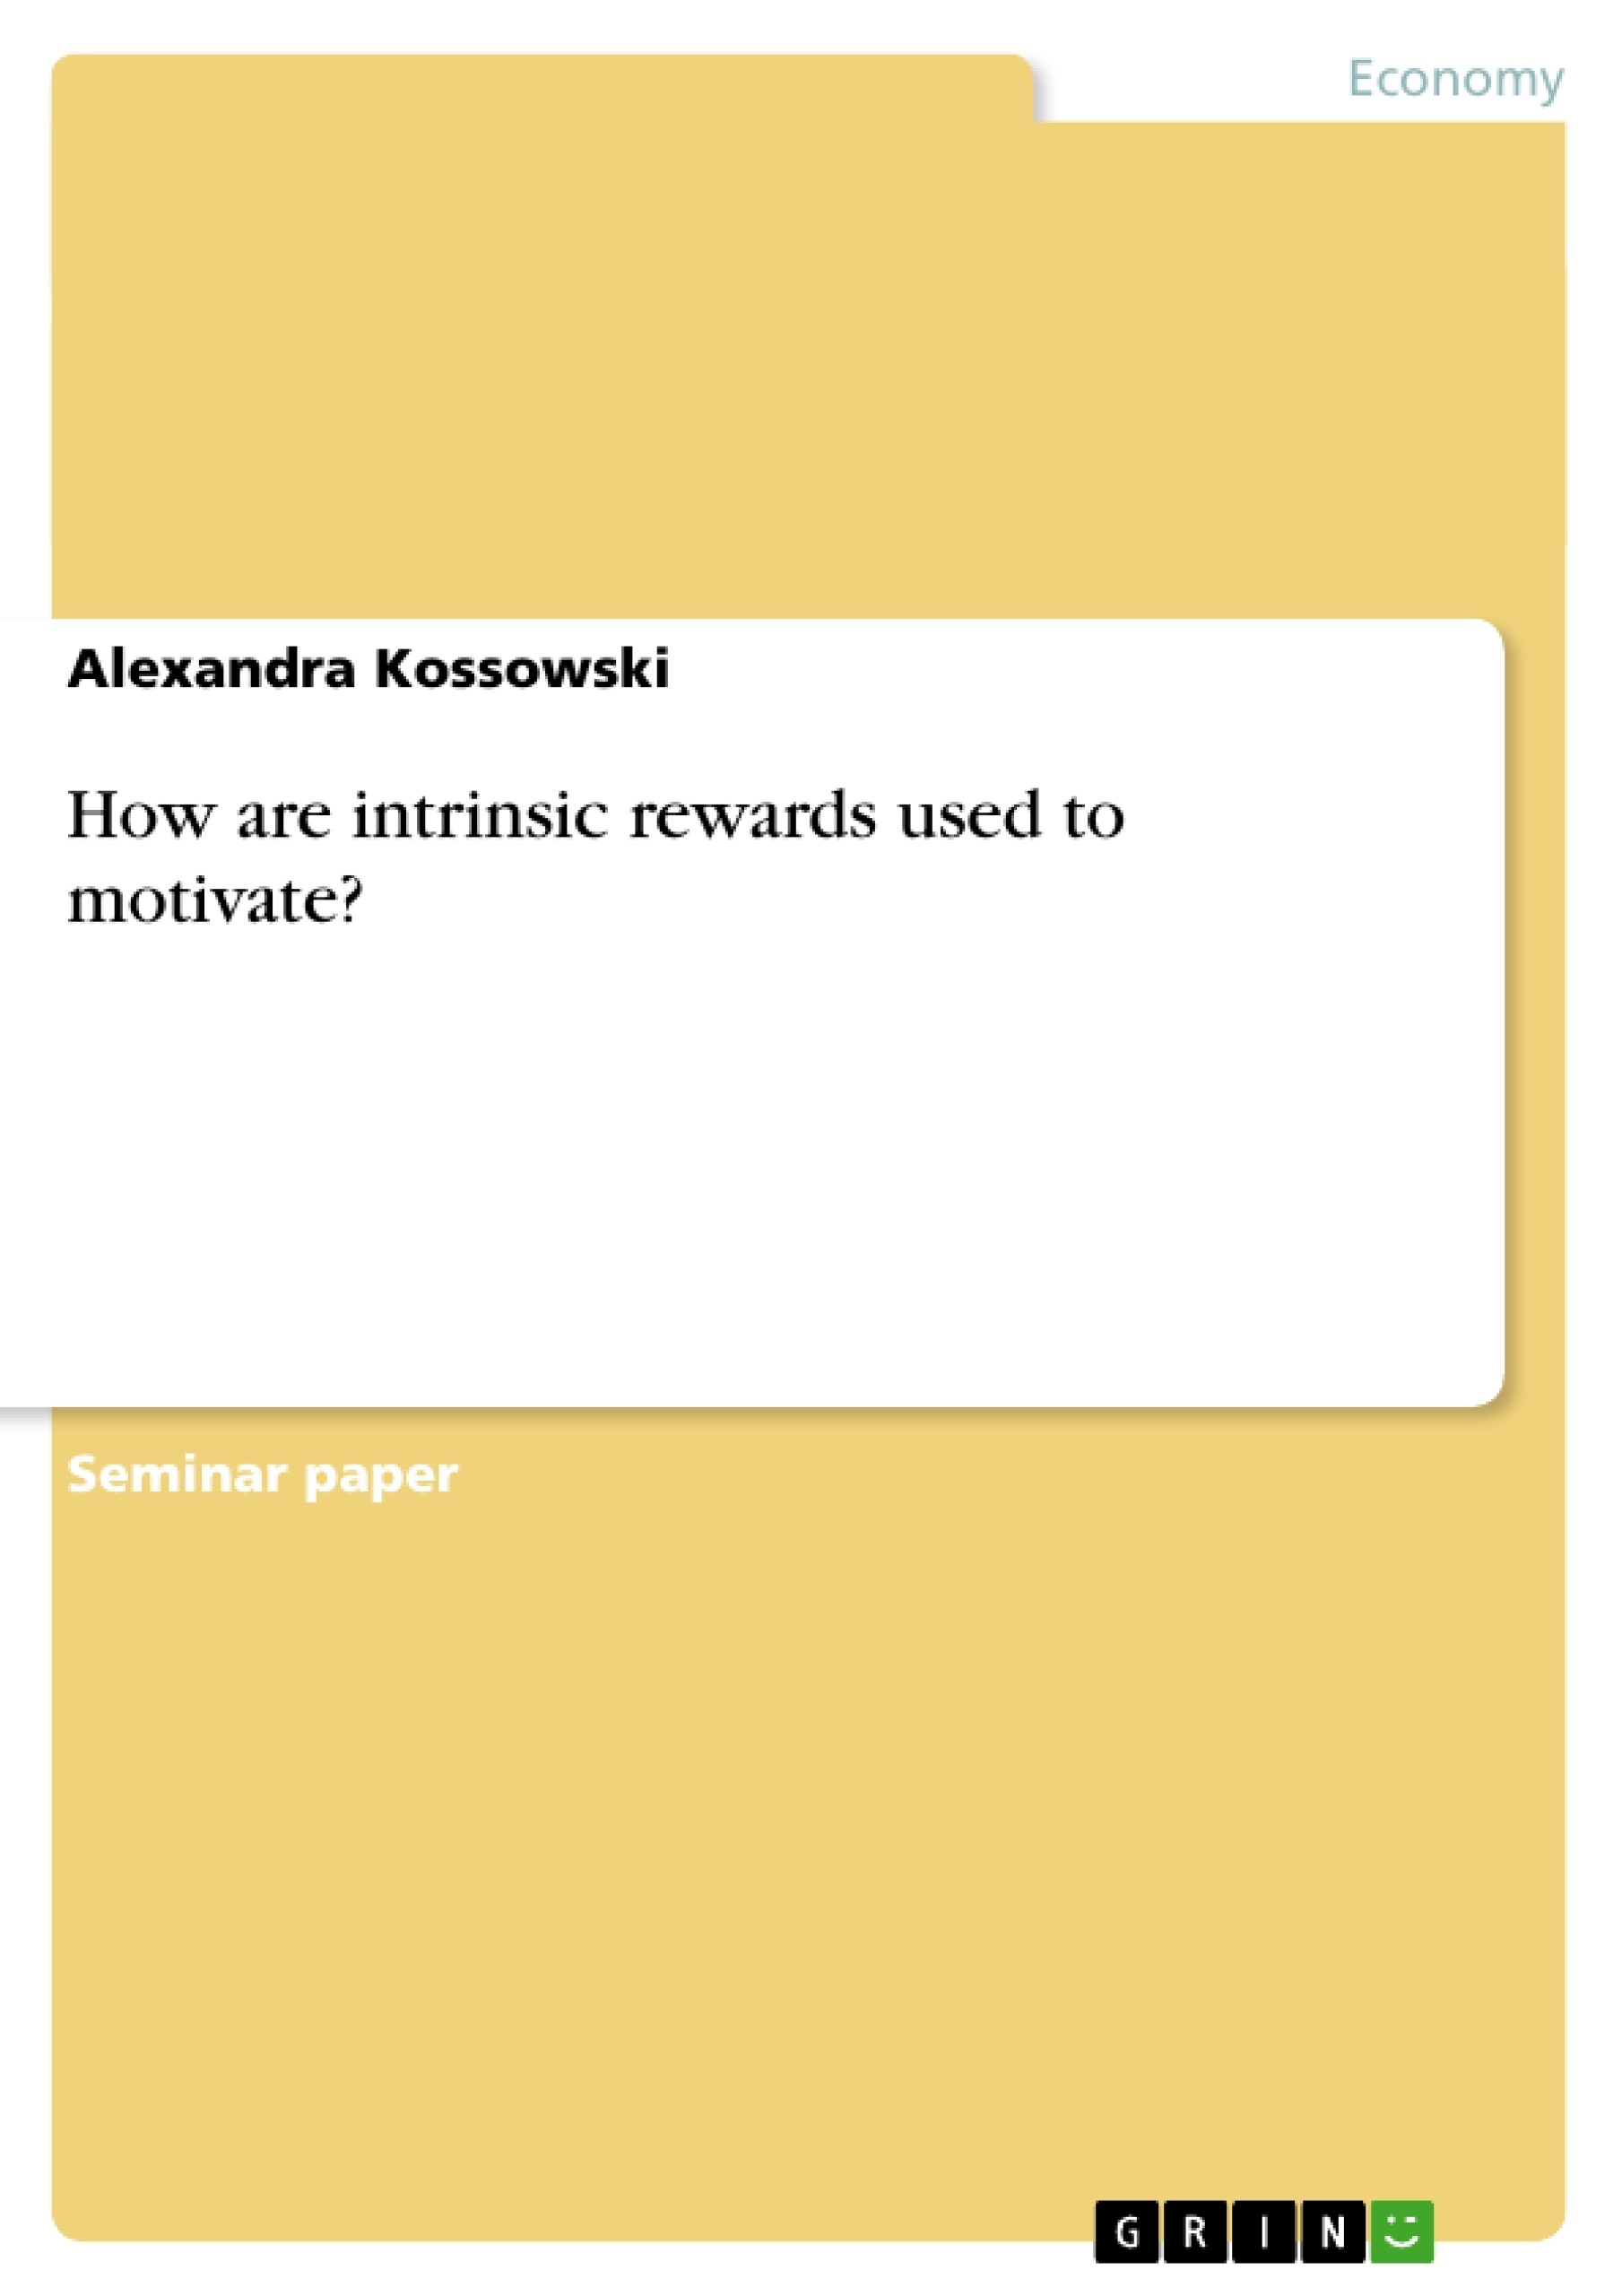 Title: How are intrinsic rewards used to motivate?